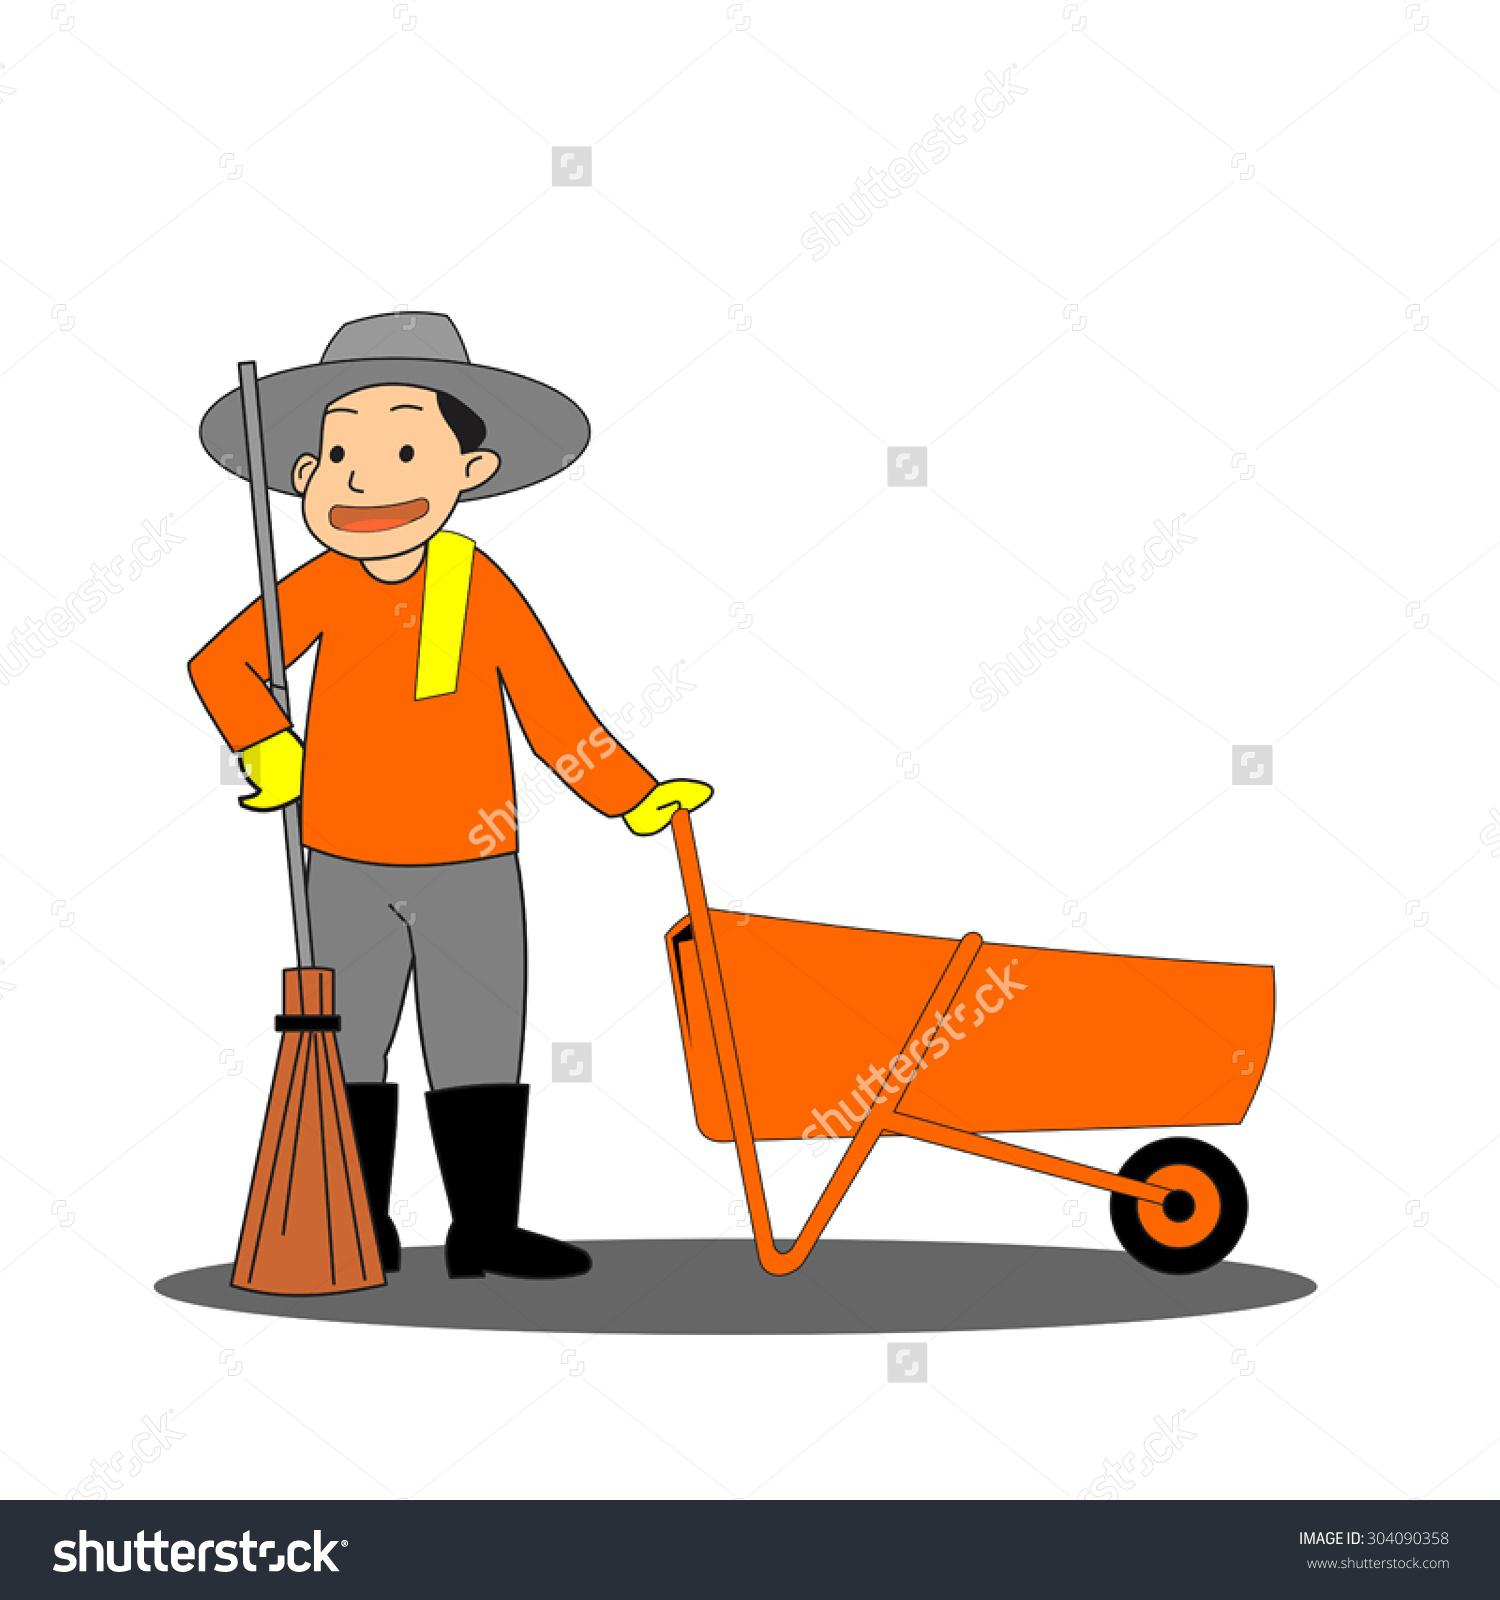 Street sweeper clipart - Clipground